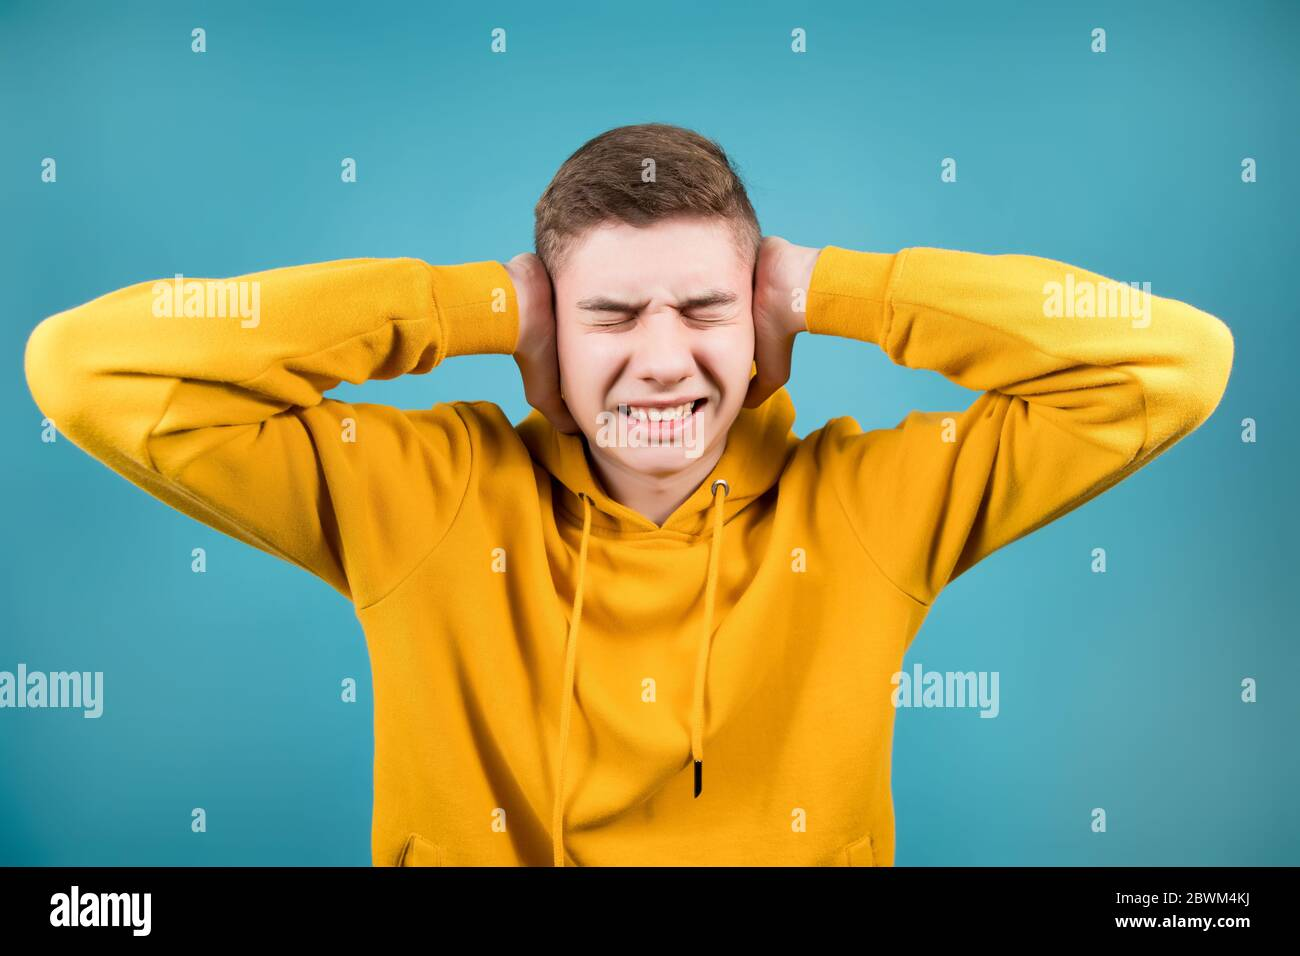 young guy in a yellow sweatshirt pinches his head and ears with his hands, squinting his eyes Stock Photo